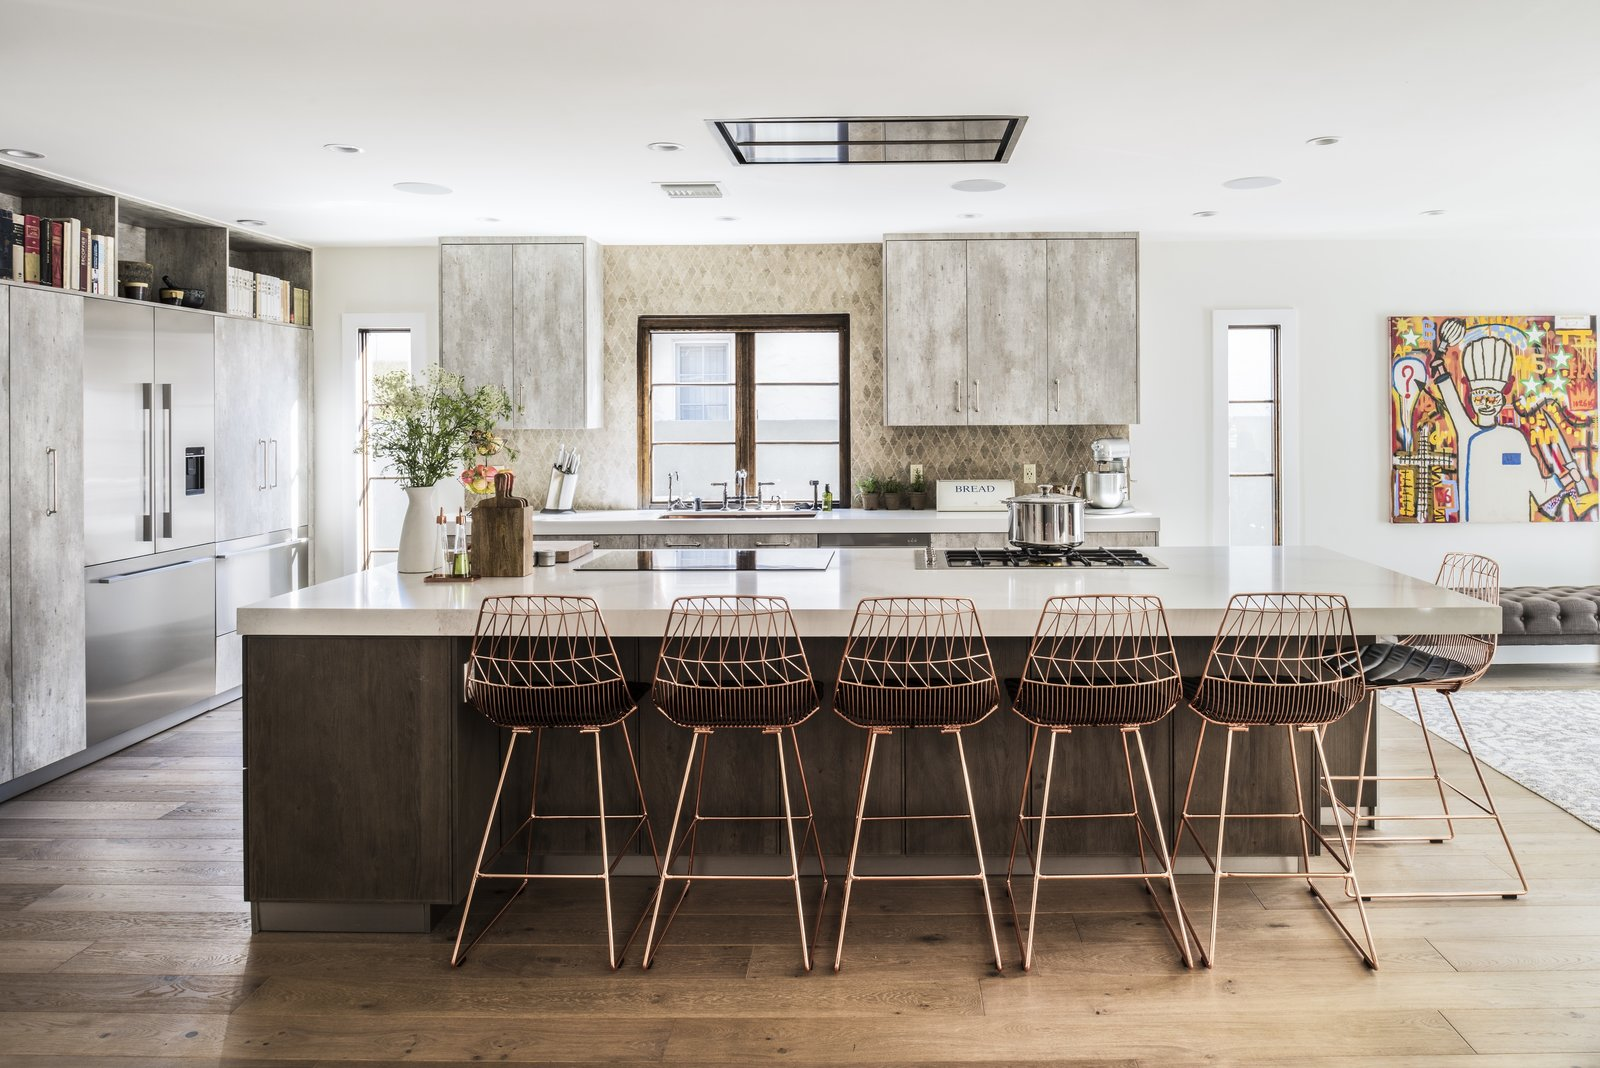 Photo 1 of 8 in Chef Ludo Lefebvre's Modern Kitchen With Rustic Roots